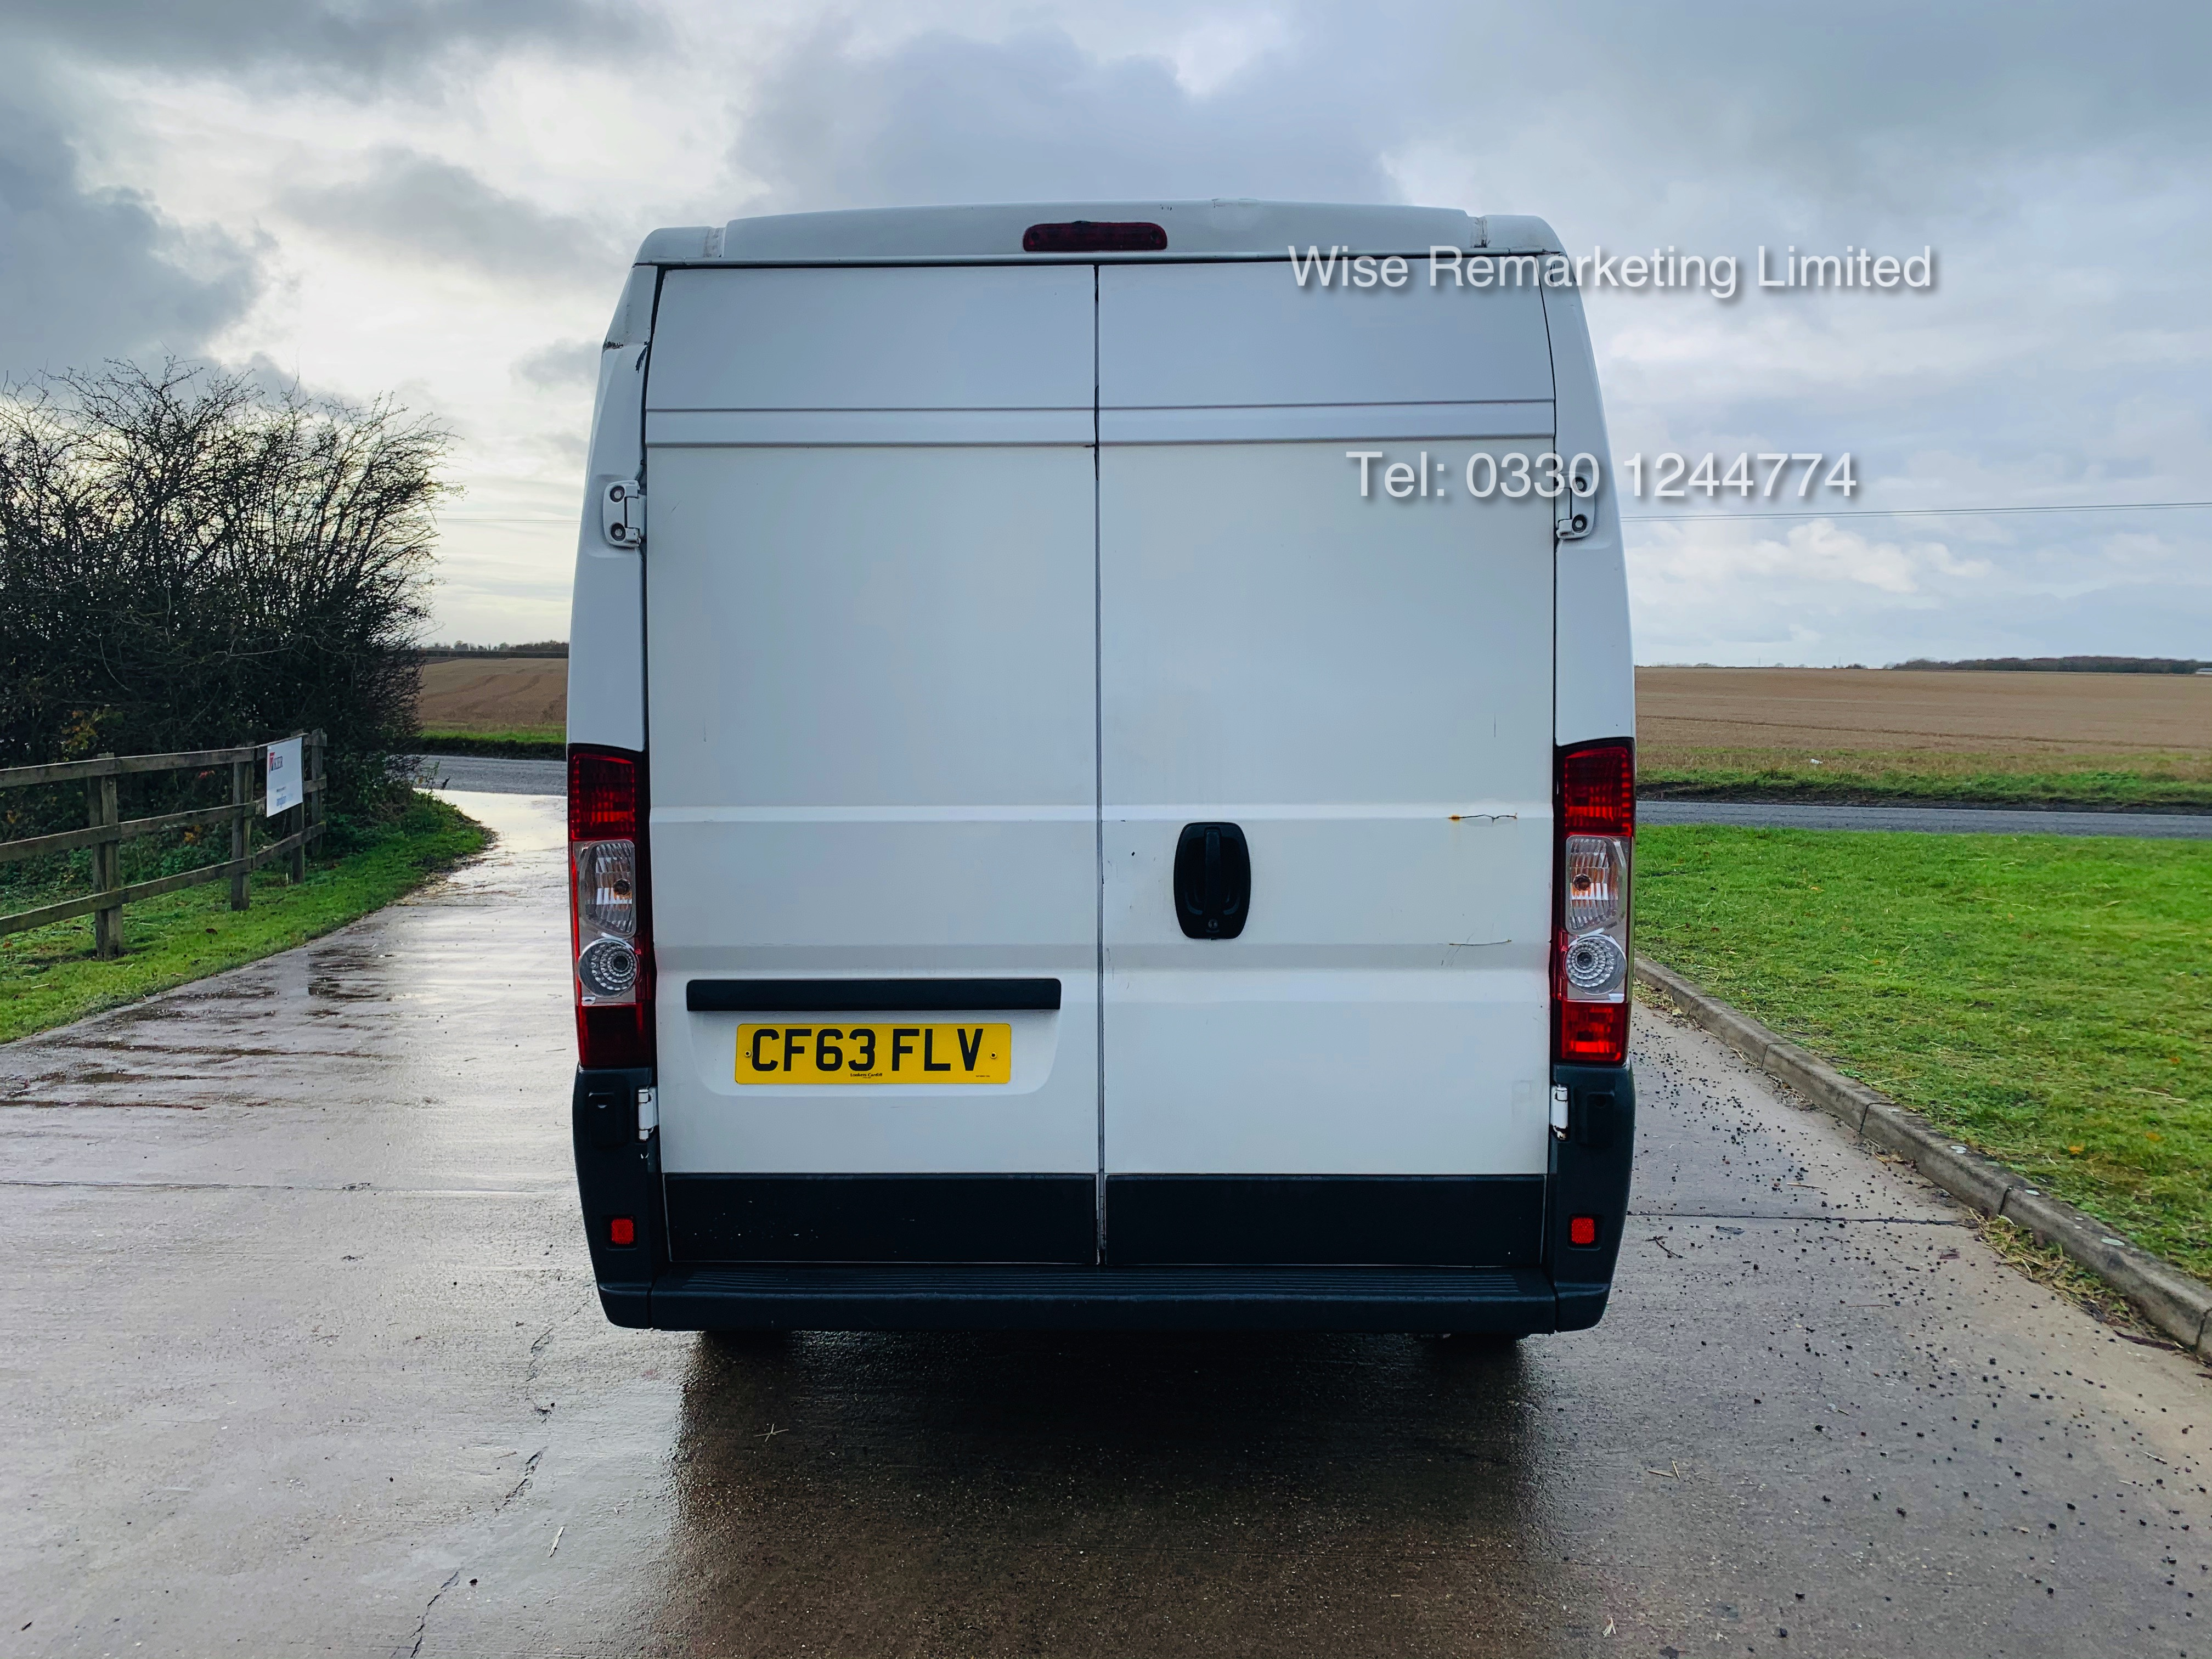 Peugeot Boxer 335 2.2 HDi Long Wheel Base( L3H2) 2014 Model - 1 Keeper From New - Image 3 of 17